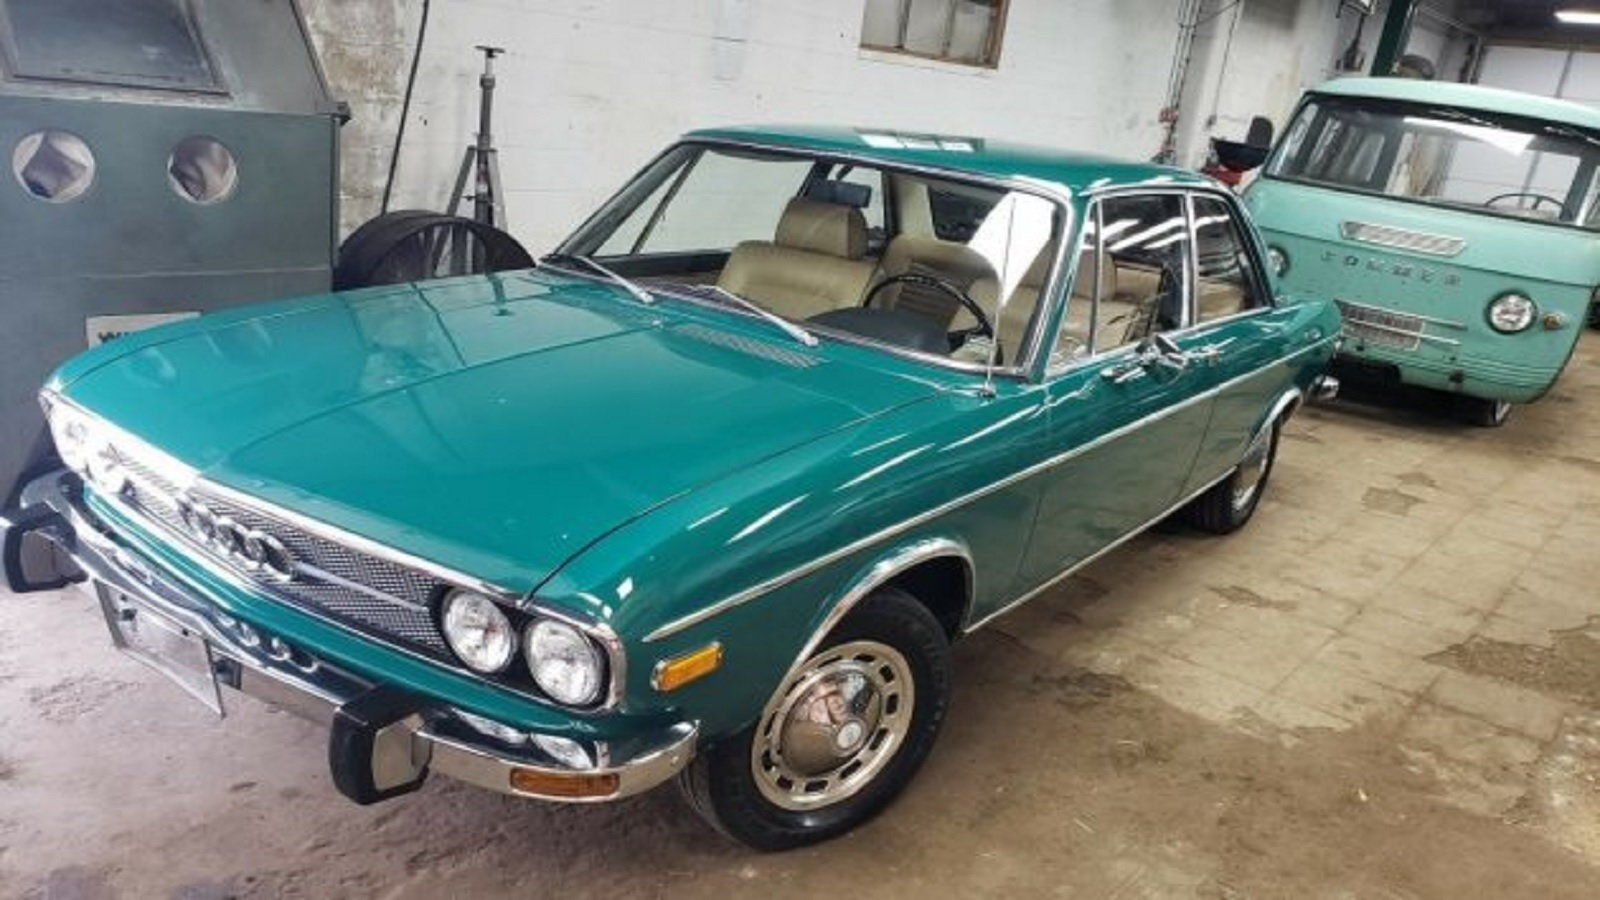 How much was this Audi 100 listed for and what made it so rare?